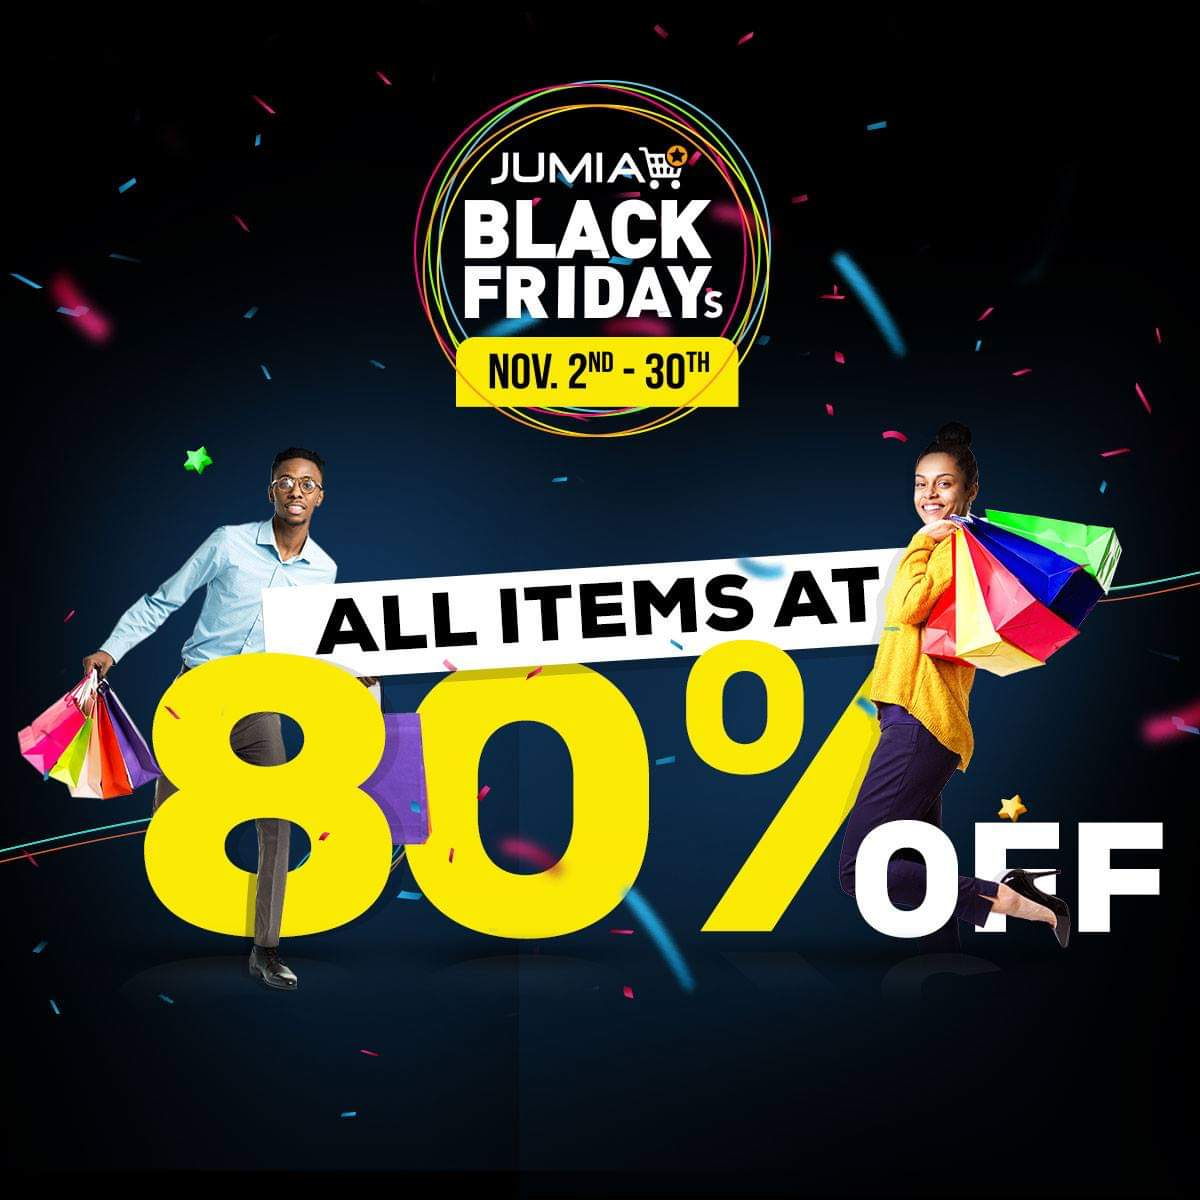 What is Jumia Black Friday